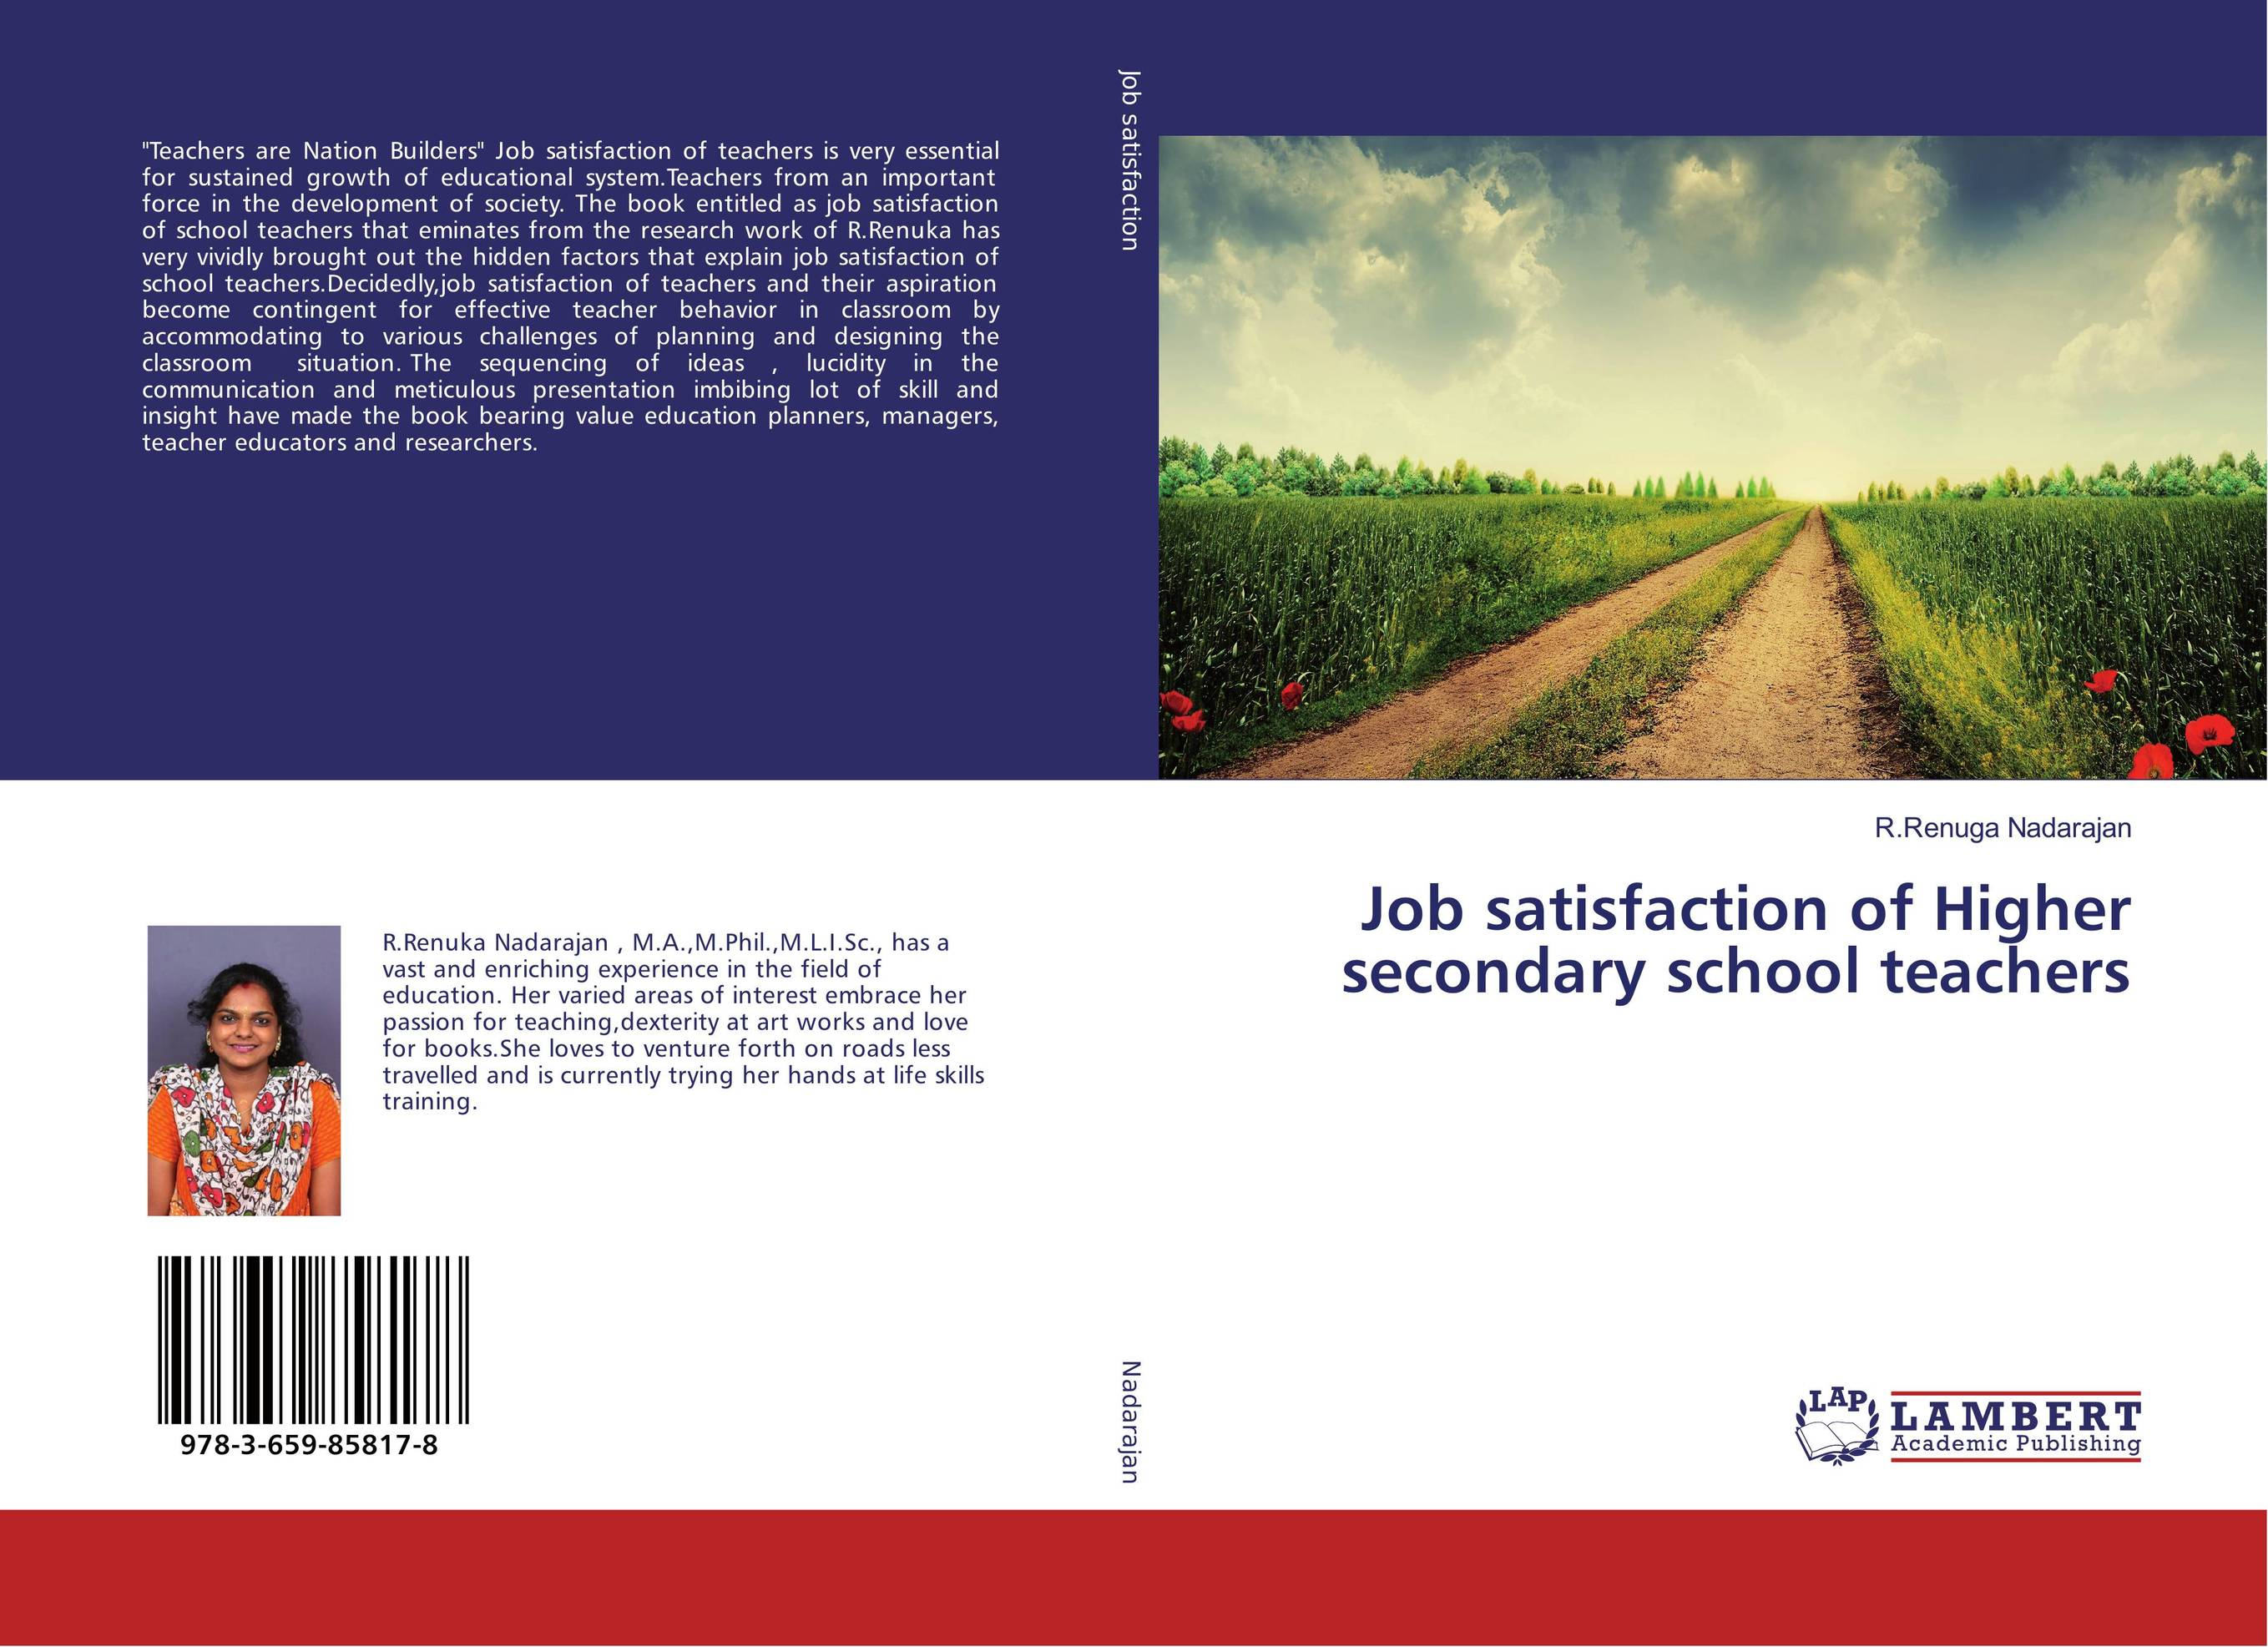 Job satisfaction of Higher secondary school teachers impact of job satisfaction on turnover intentions